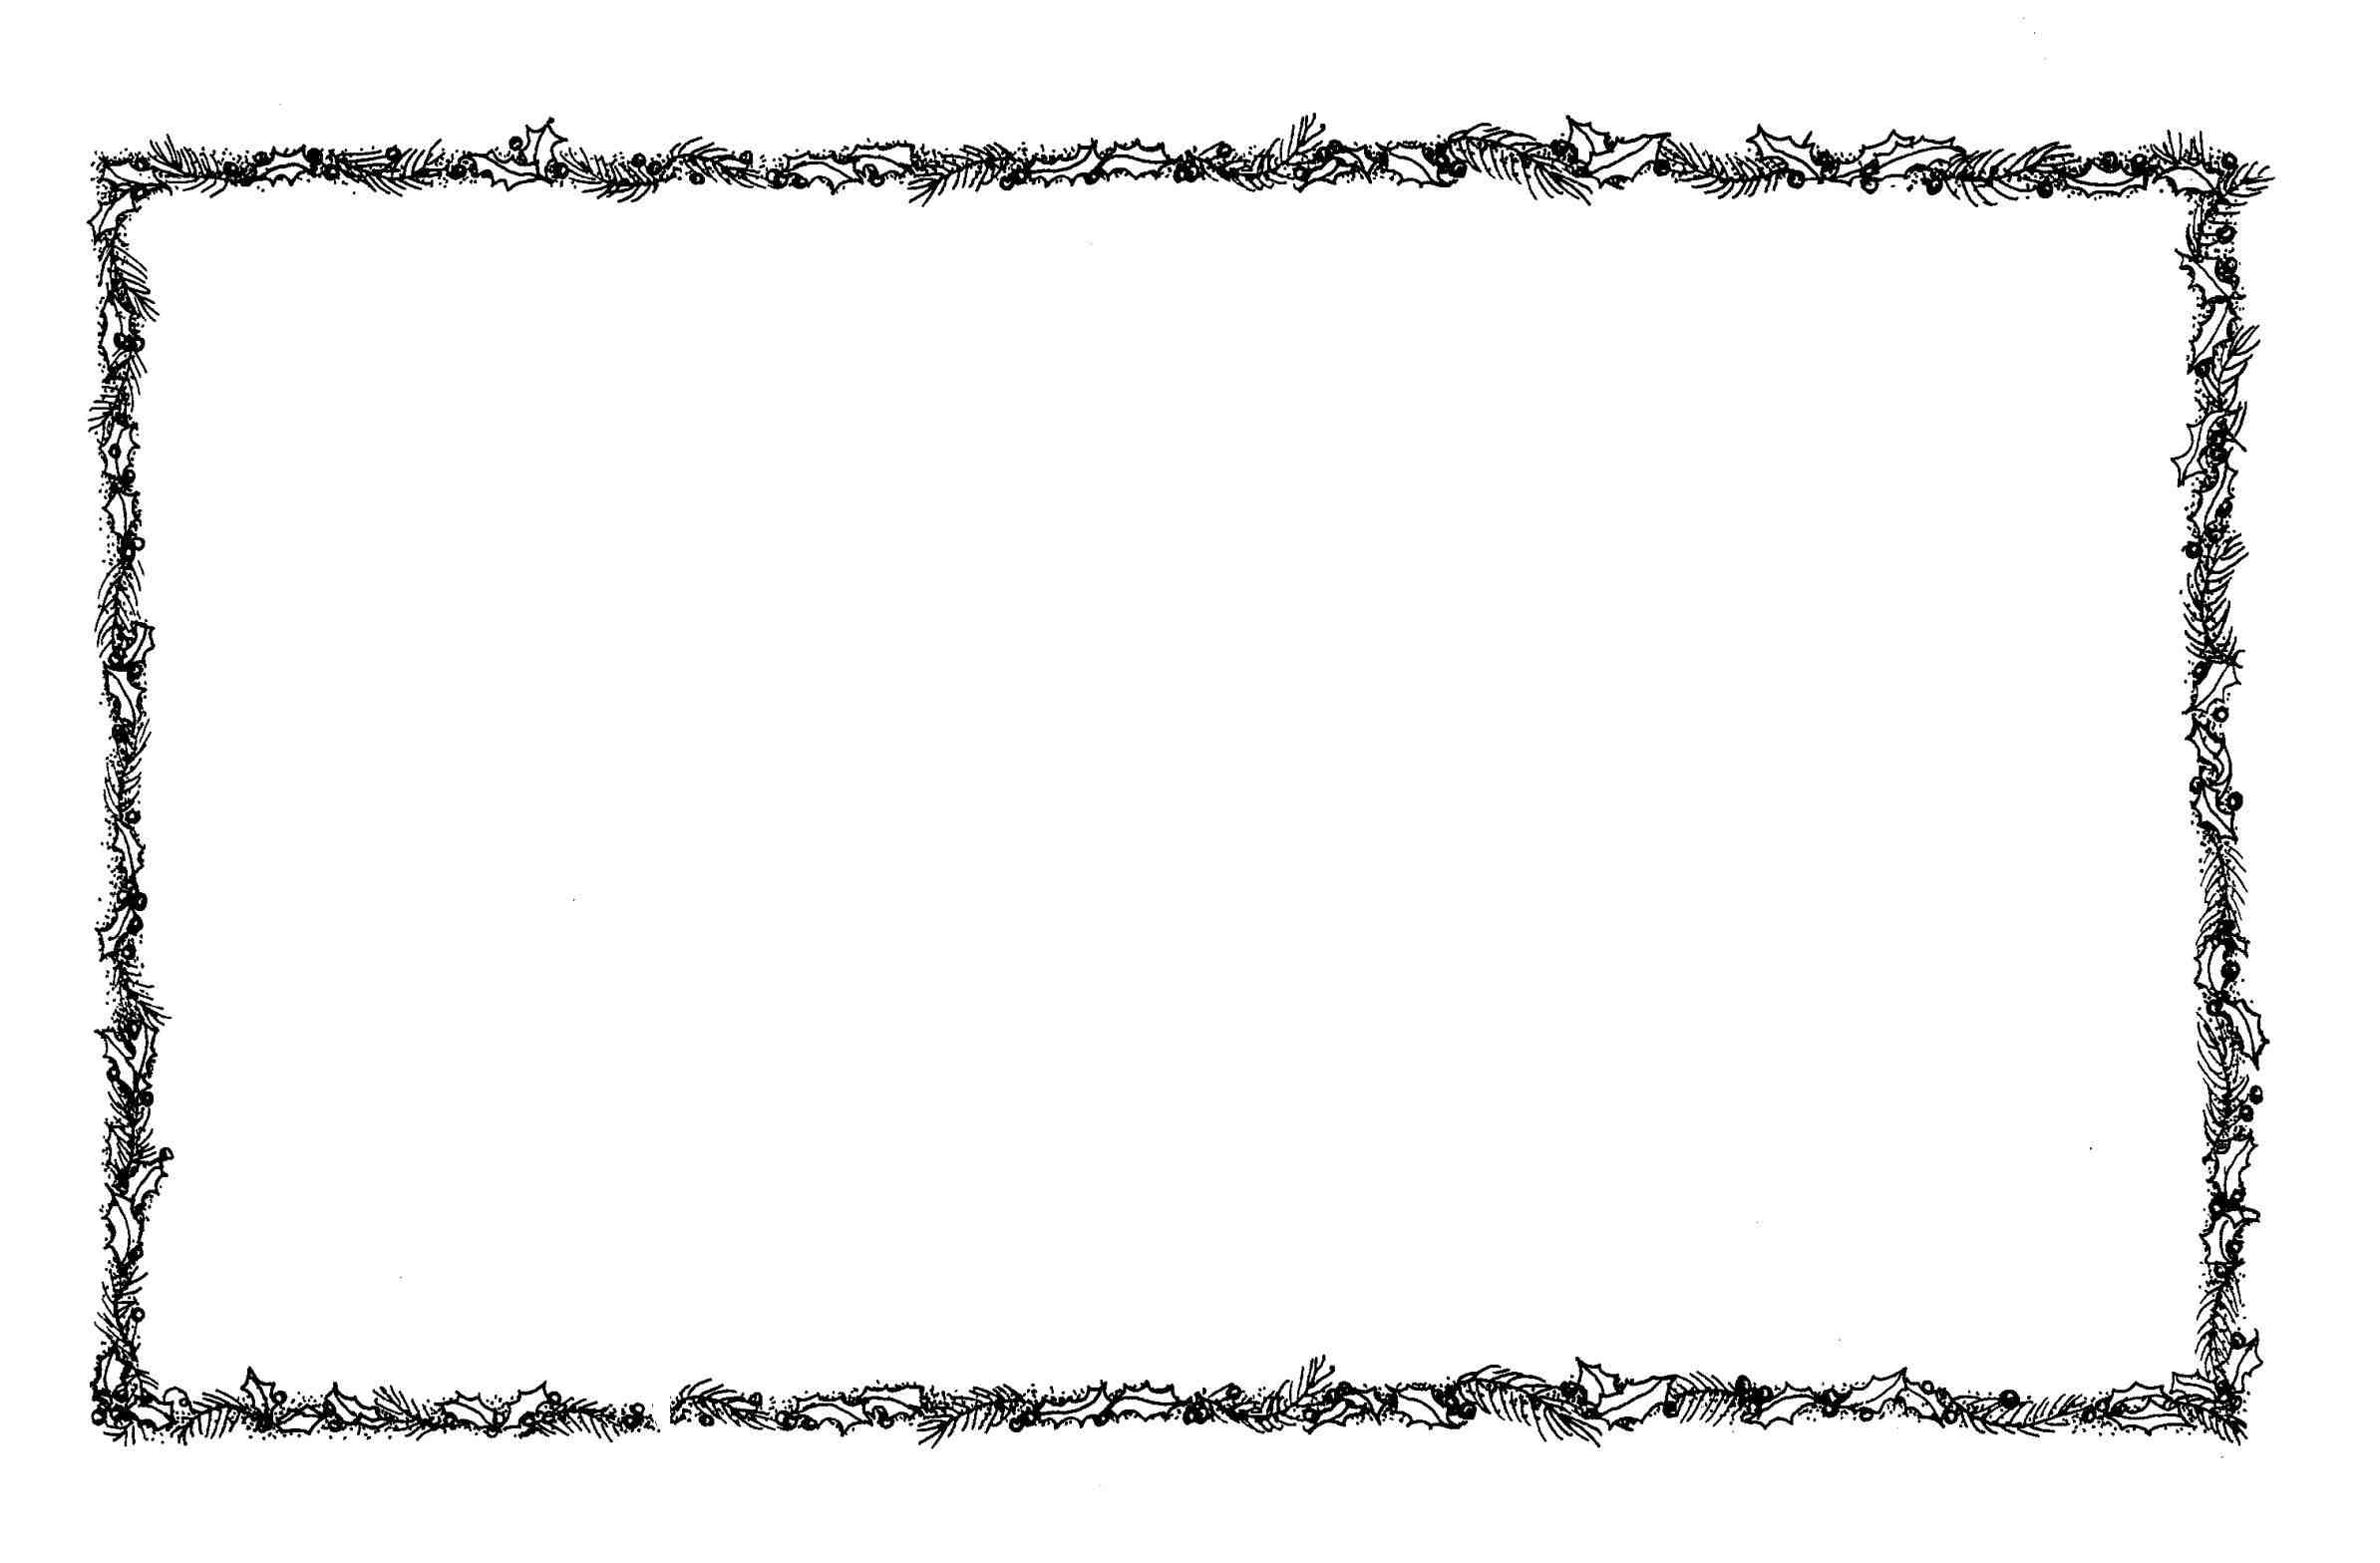 2387x1568 Free Christmas Borders And Frames Clip Art Cheminee.website